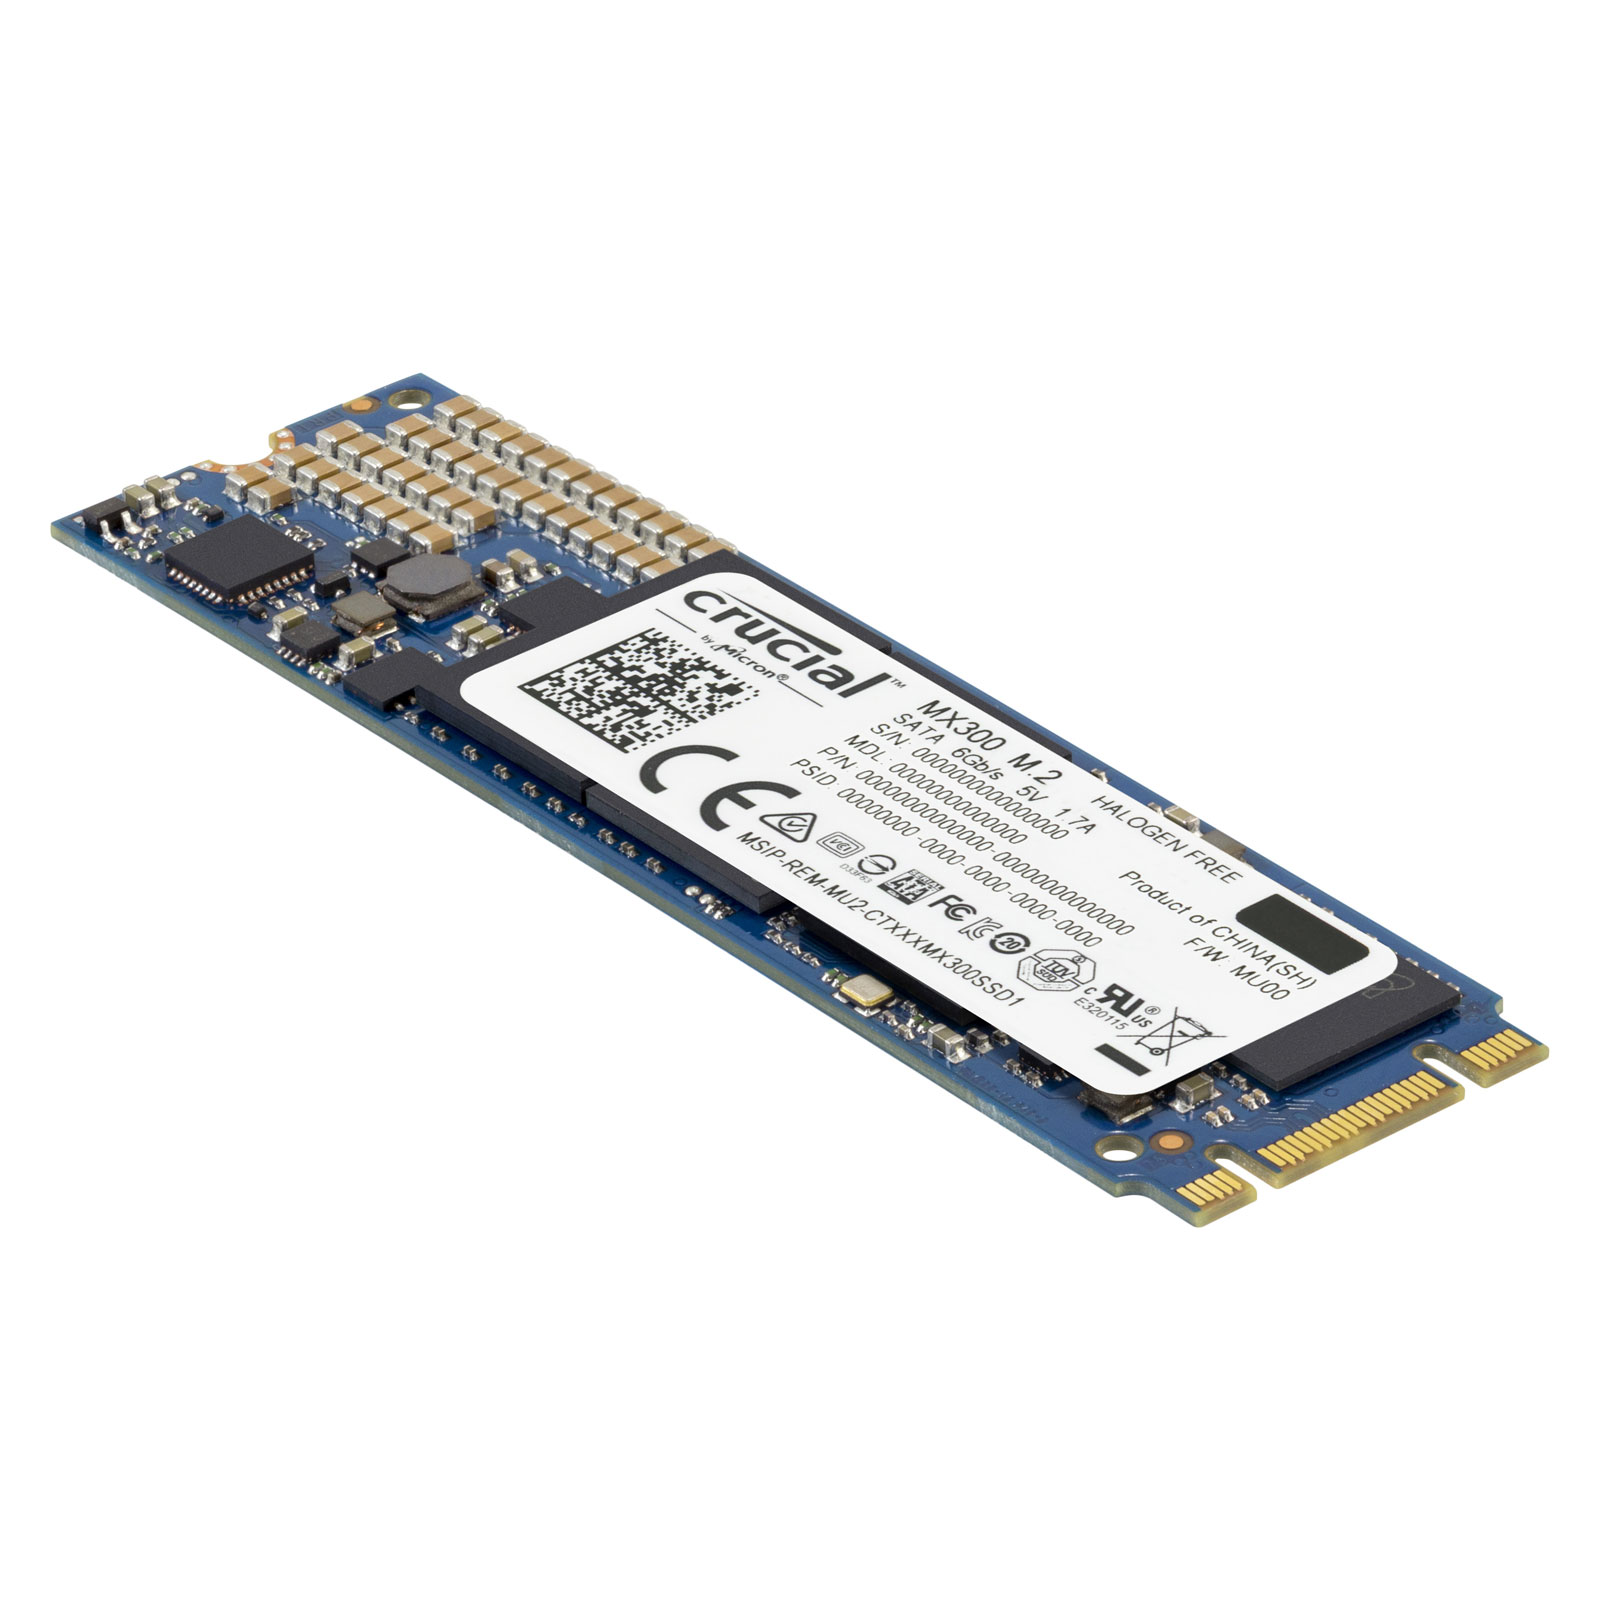 Disque SSD Crucial MX300 1 To M.2 Type 2280 SSD 1 To M.2 6Gb/s